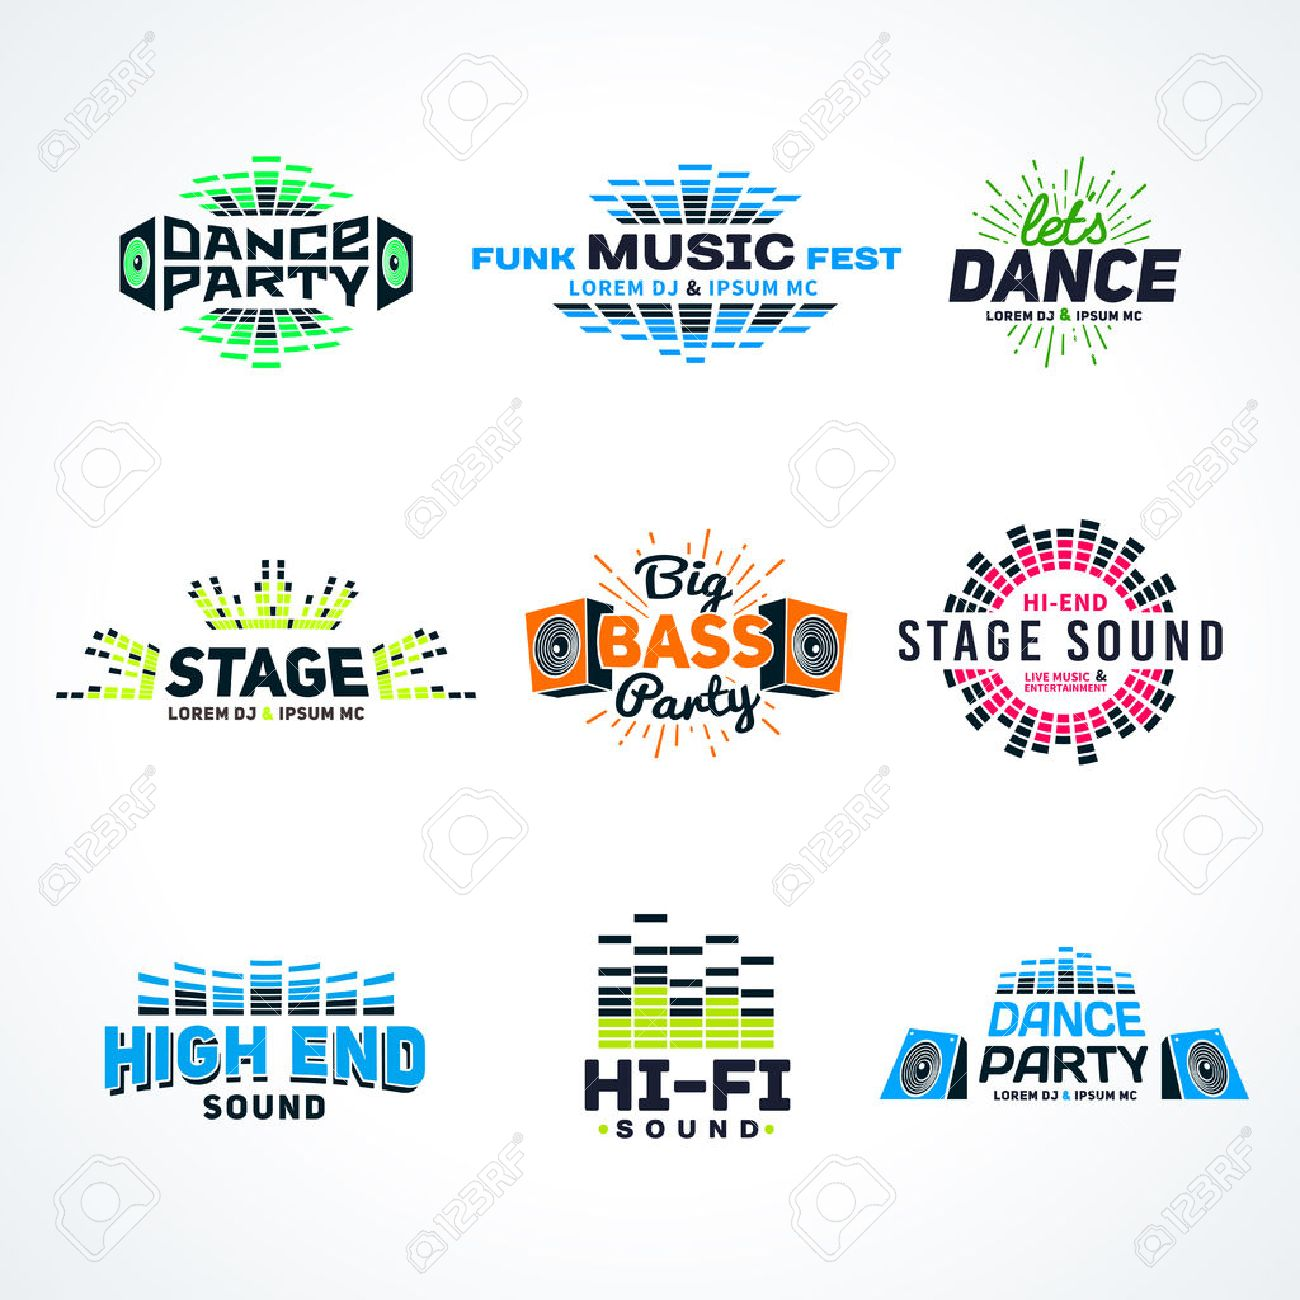 sixth set music equalizer emblem vector on light background royalty free cliparts vectors and stock illustration image 41068613 sixth set music equalizer emblem vector on light background